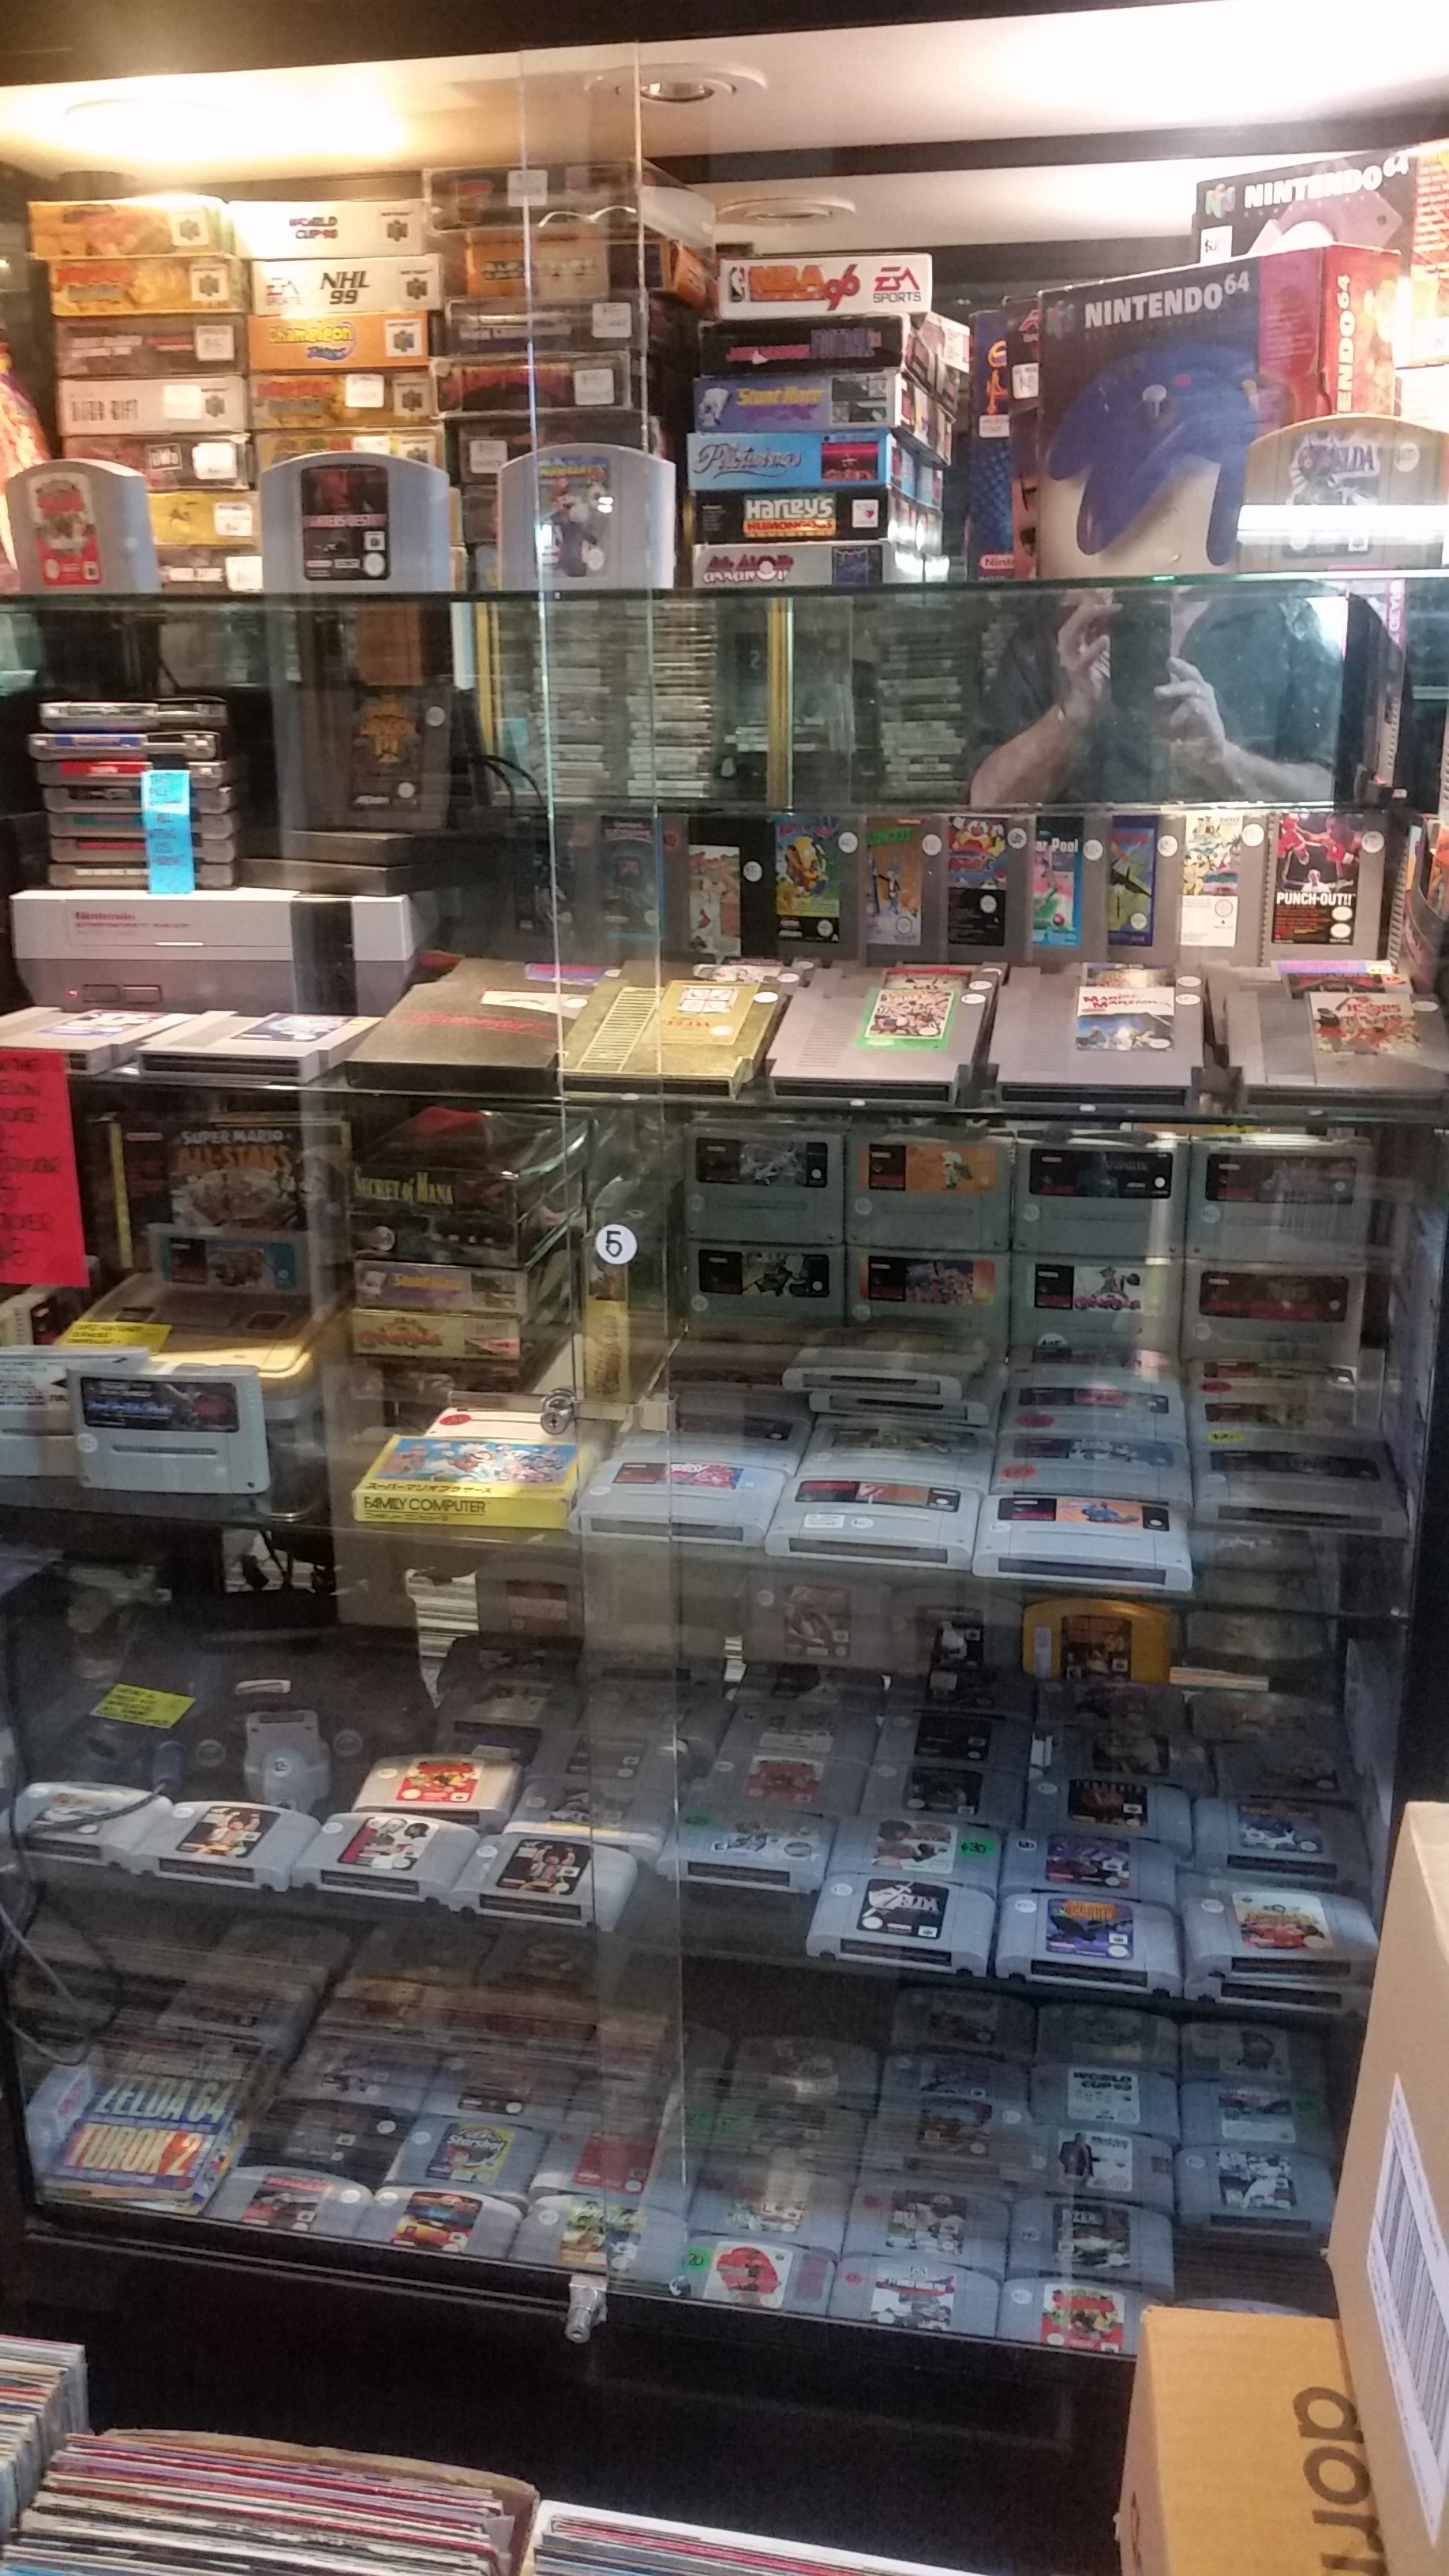 Hey all you retro gamers out there have a look at this...we have been asked to sell a friends collection of games and consoles,there are heaps to chose from..We have play station 1 and 2,Sega master system and mega drive,Nintendo of all types,Atari Xbox and even intellivision...so far we have received over 1000 games and there are more to come so get in quick,first come first served!